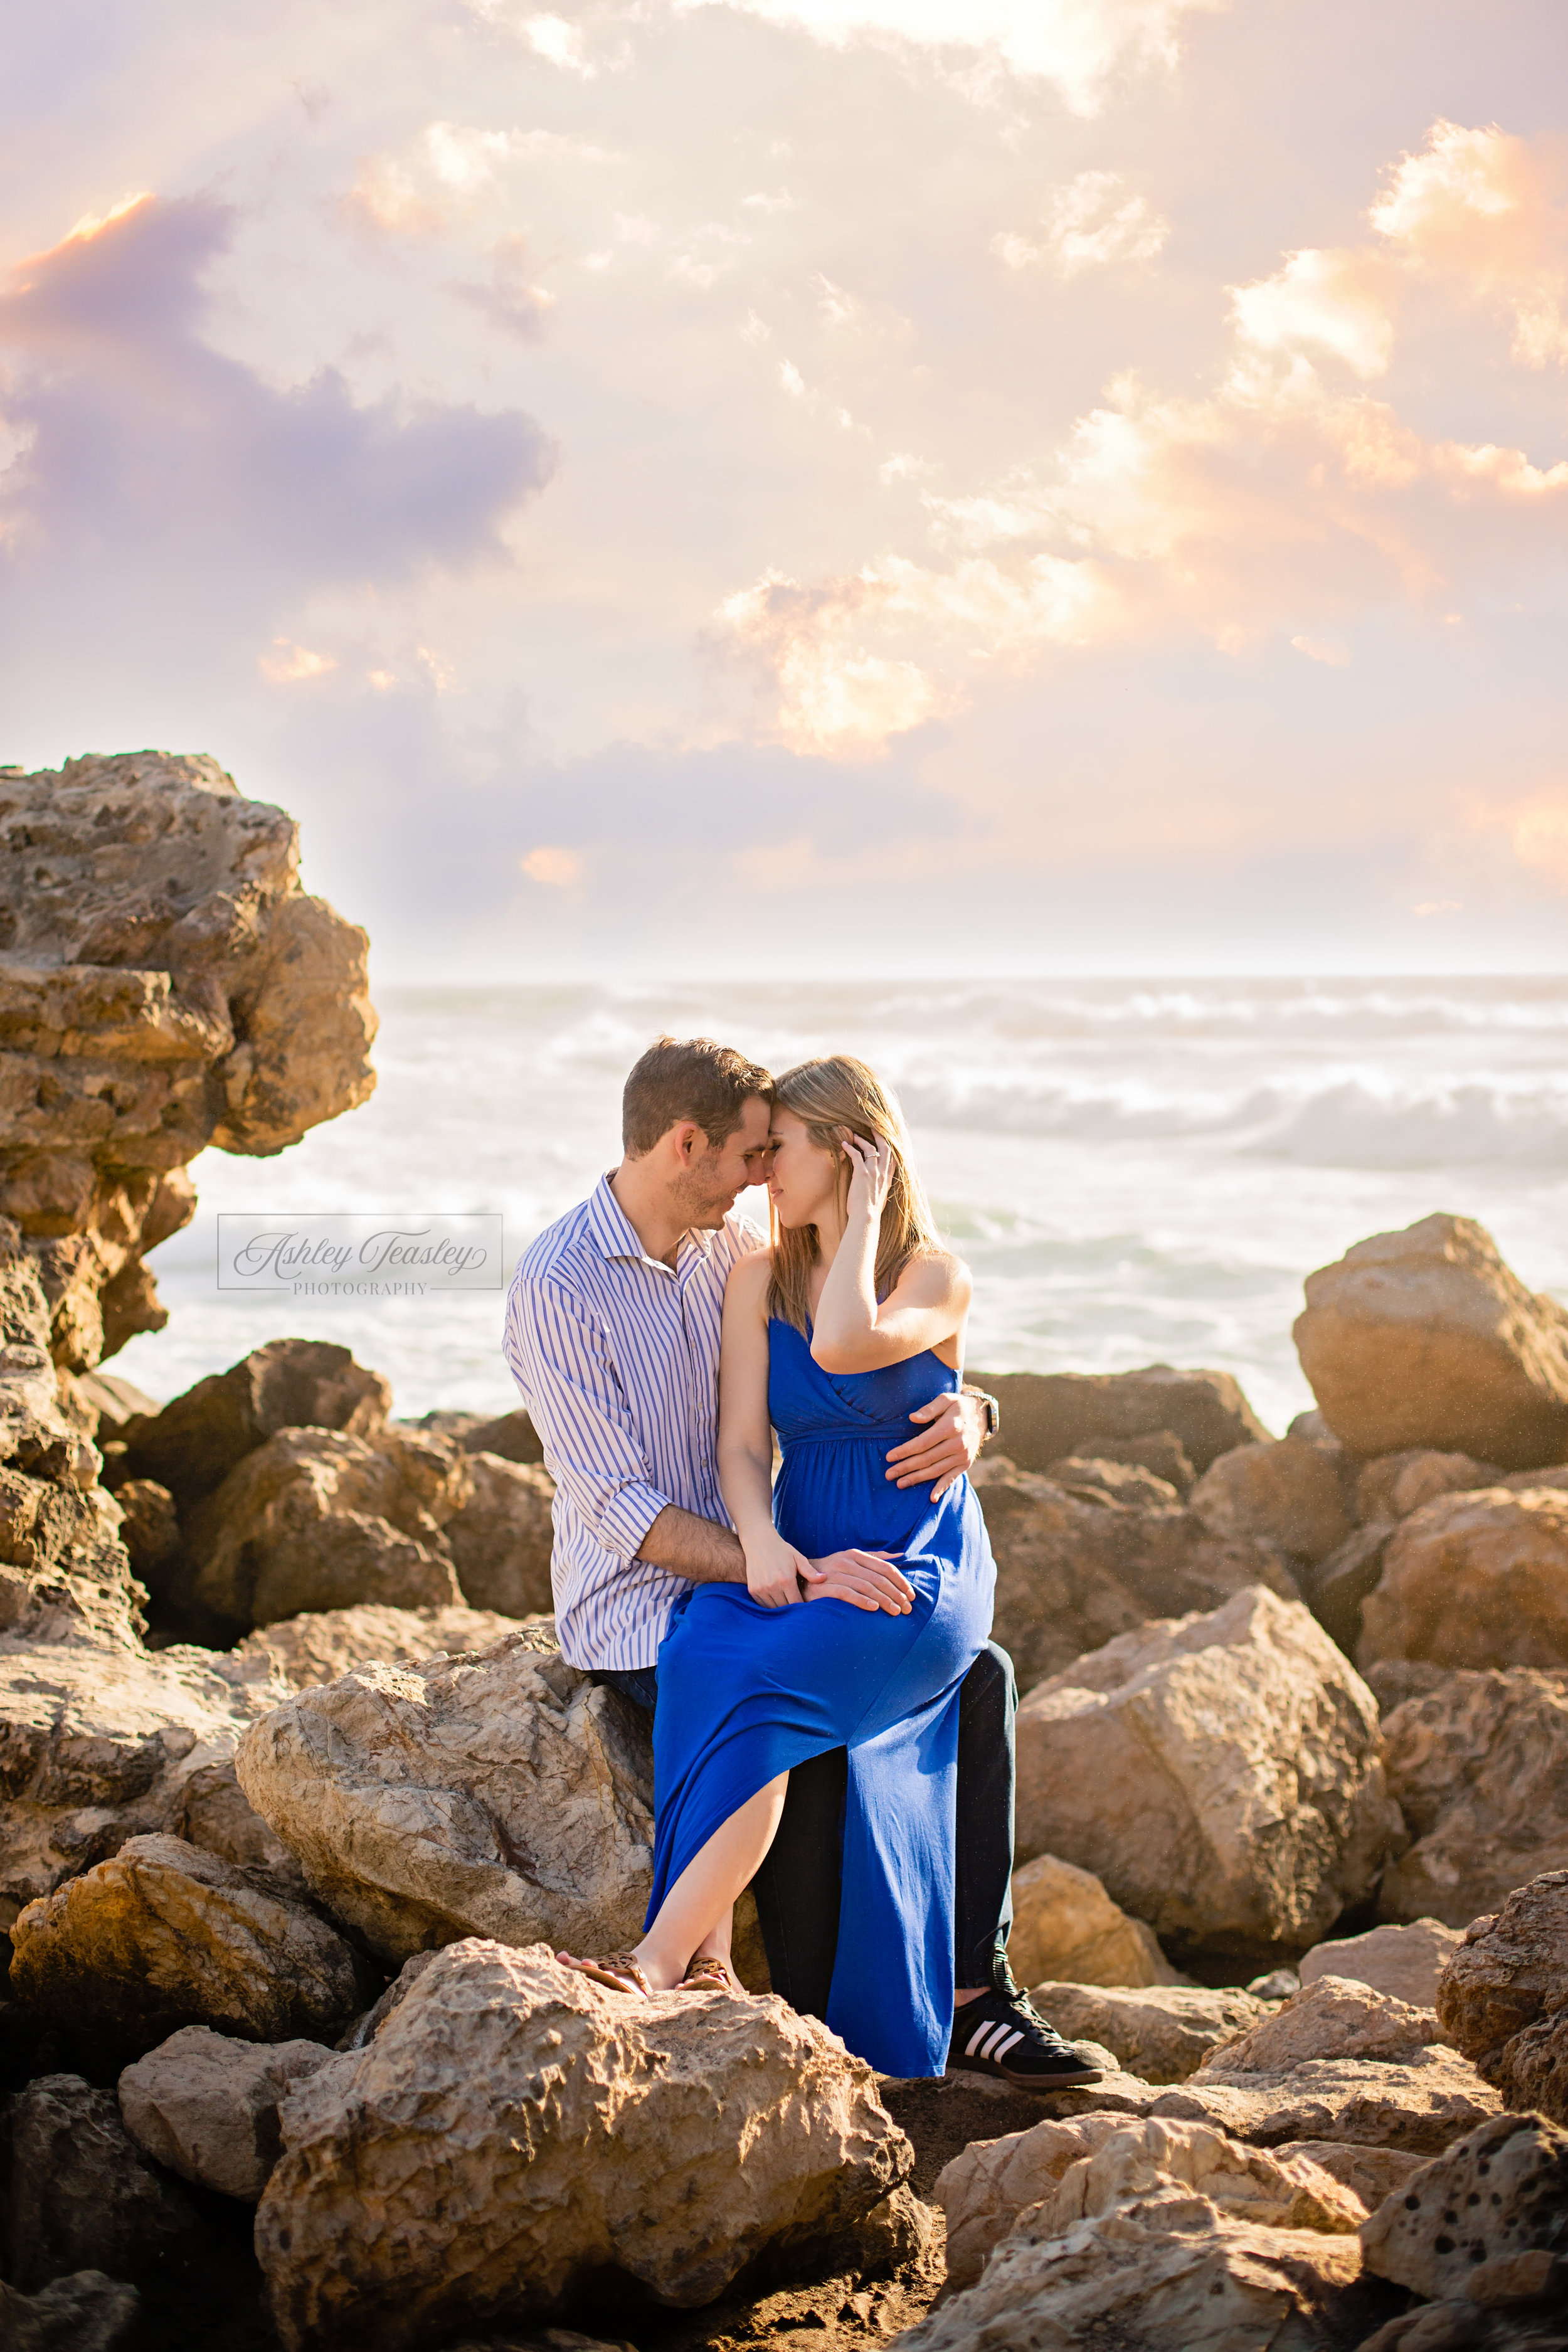 Jenny & David - The Sutro Baths - San Francisco - Sacramento Wedding Photographer - Ashley Teasley Photography-.jpg